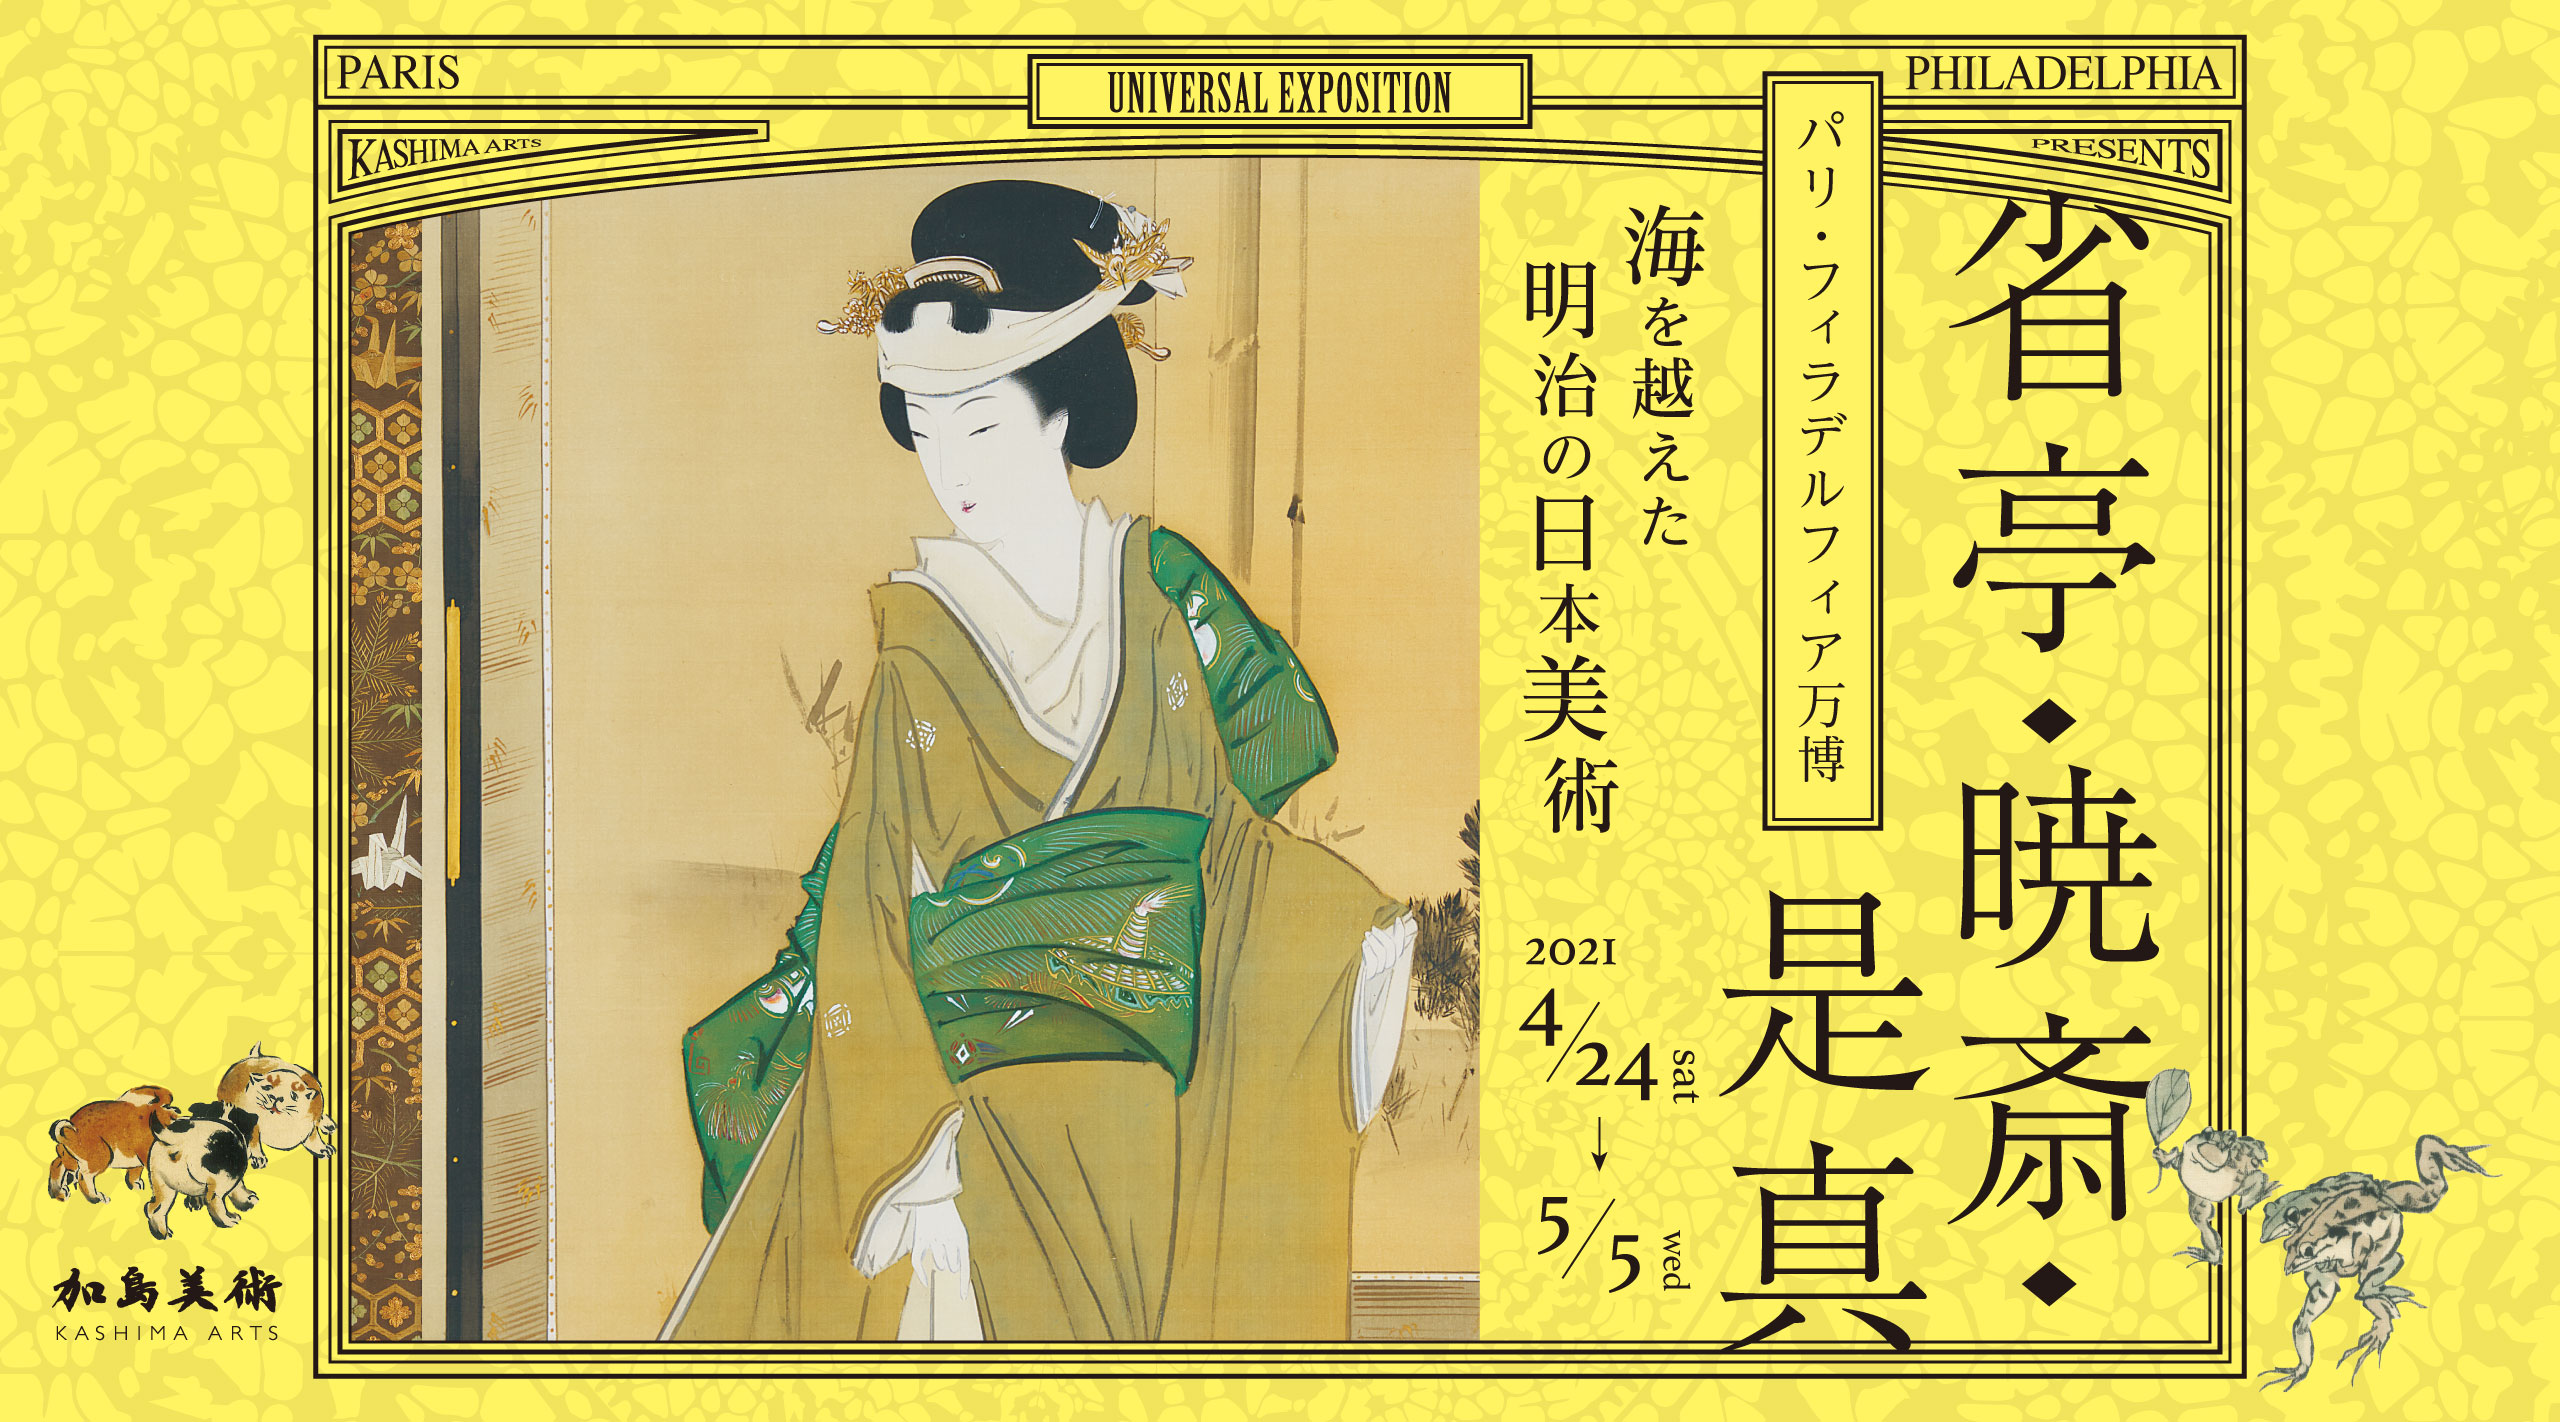 Seitei, Kyosai and Zeshin: Japanese Art at the Paris and Philadelphia Expositions